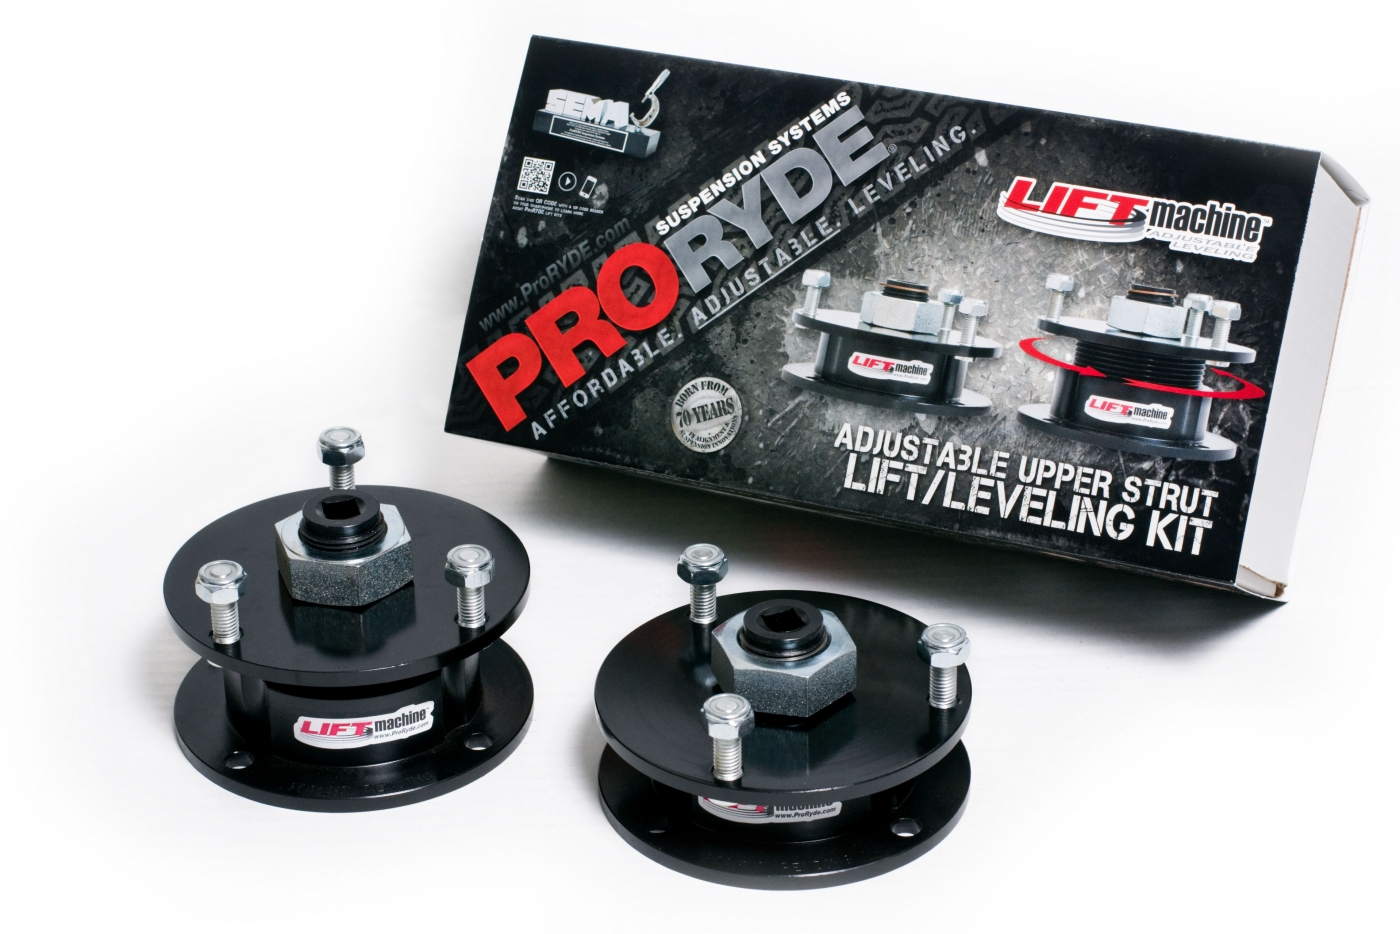 LIFTmachine ON-VEHICLE ADJUSTABLE FRONT LIFT LEVELING KITS